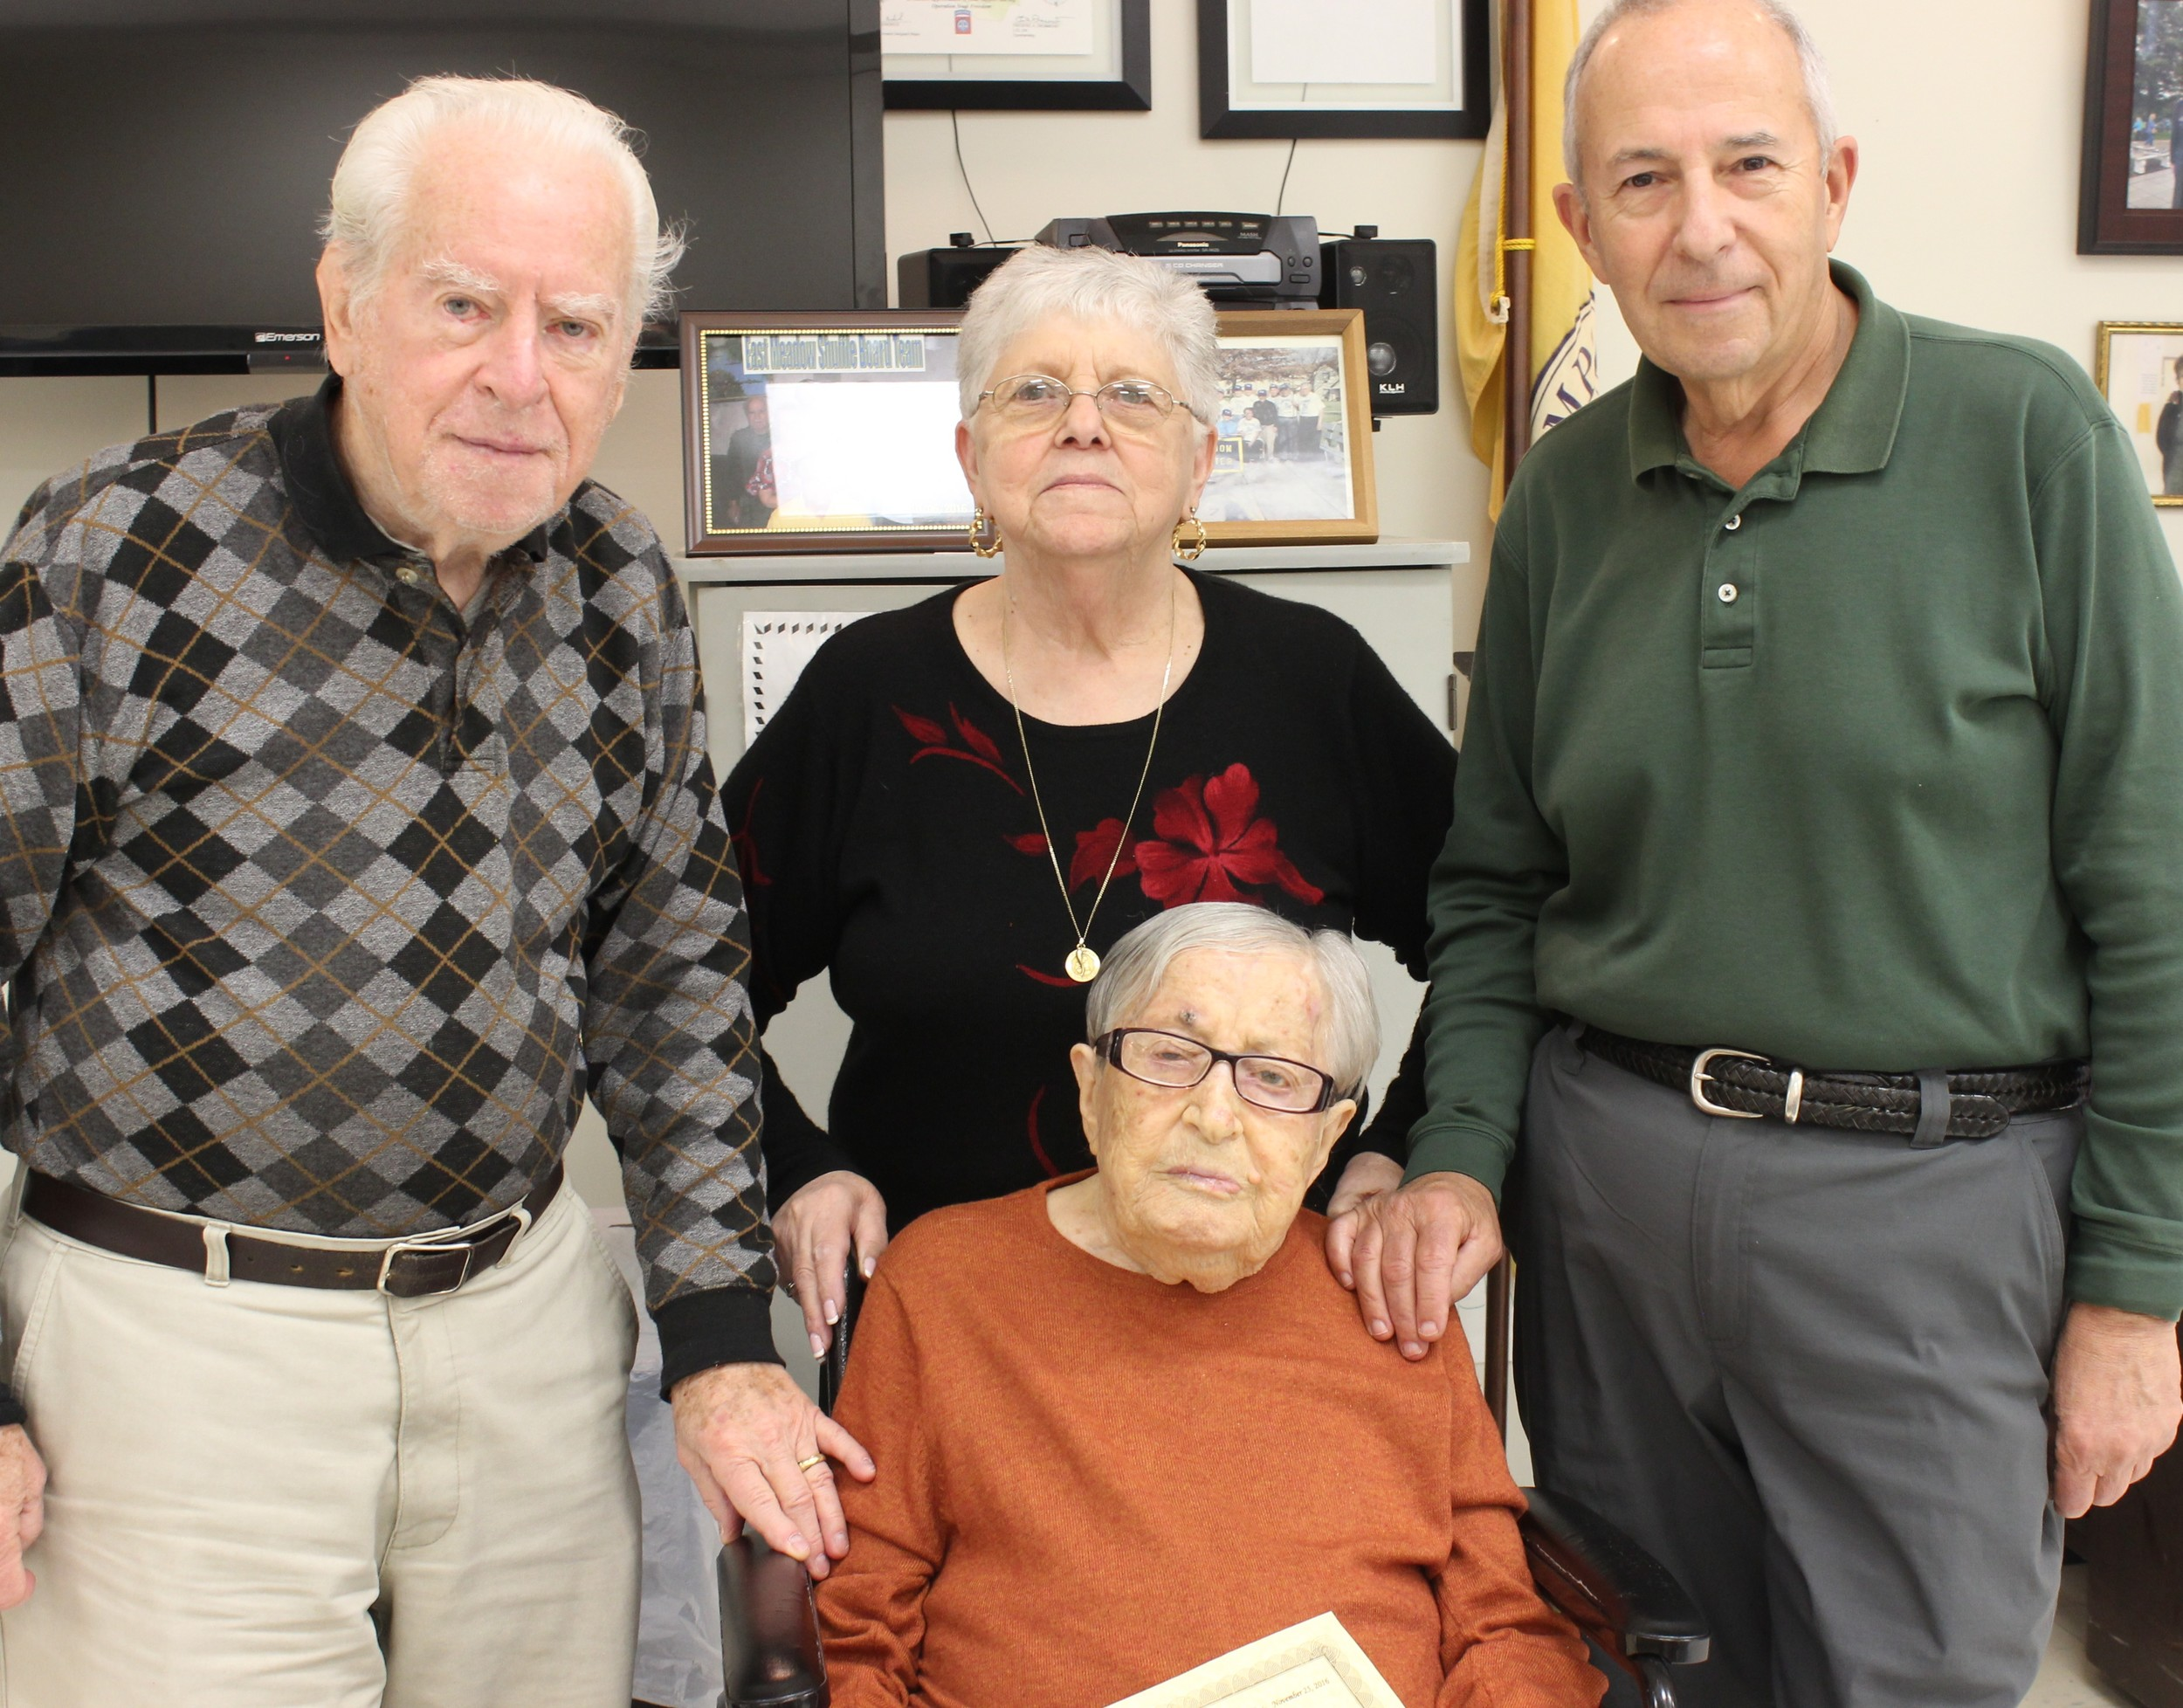 Helping the oldest member of the East Meadow Senior Center, Mollie Spiegel, center, celebrate her 106th birthday were Ray Ronco, Phyllis Caggiano and Burt Spiegel.